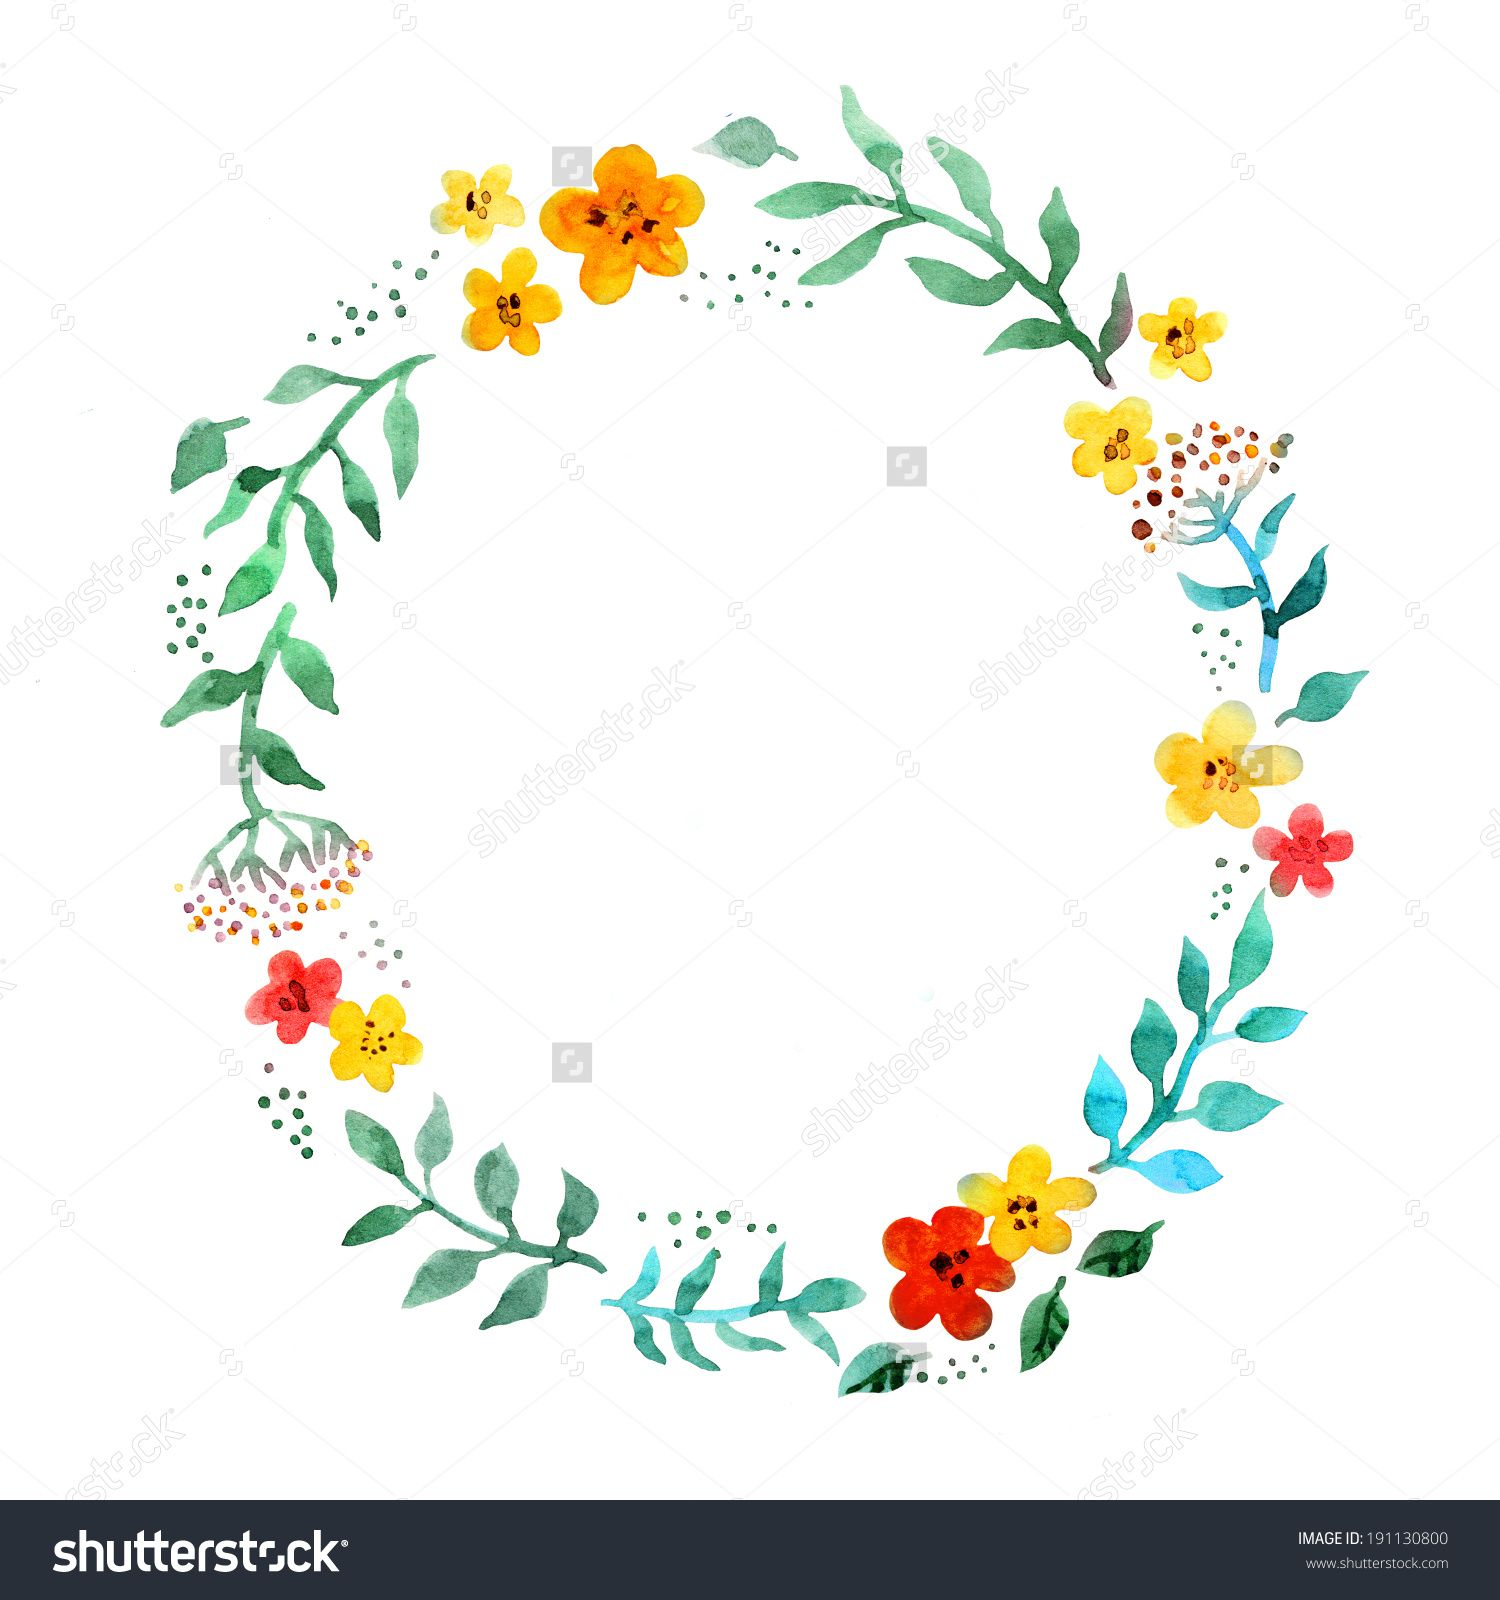 Floral circle wreath with cute flowers watercolor hand painted floral circle wreath with cute flowers watercolor hand painted border for greeting card kristyandbryce Image collections